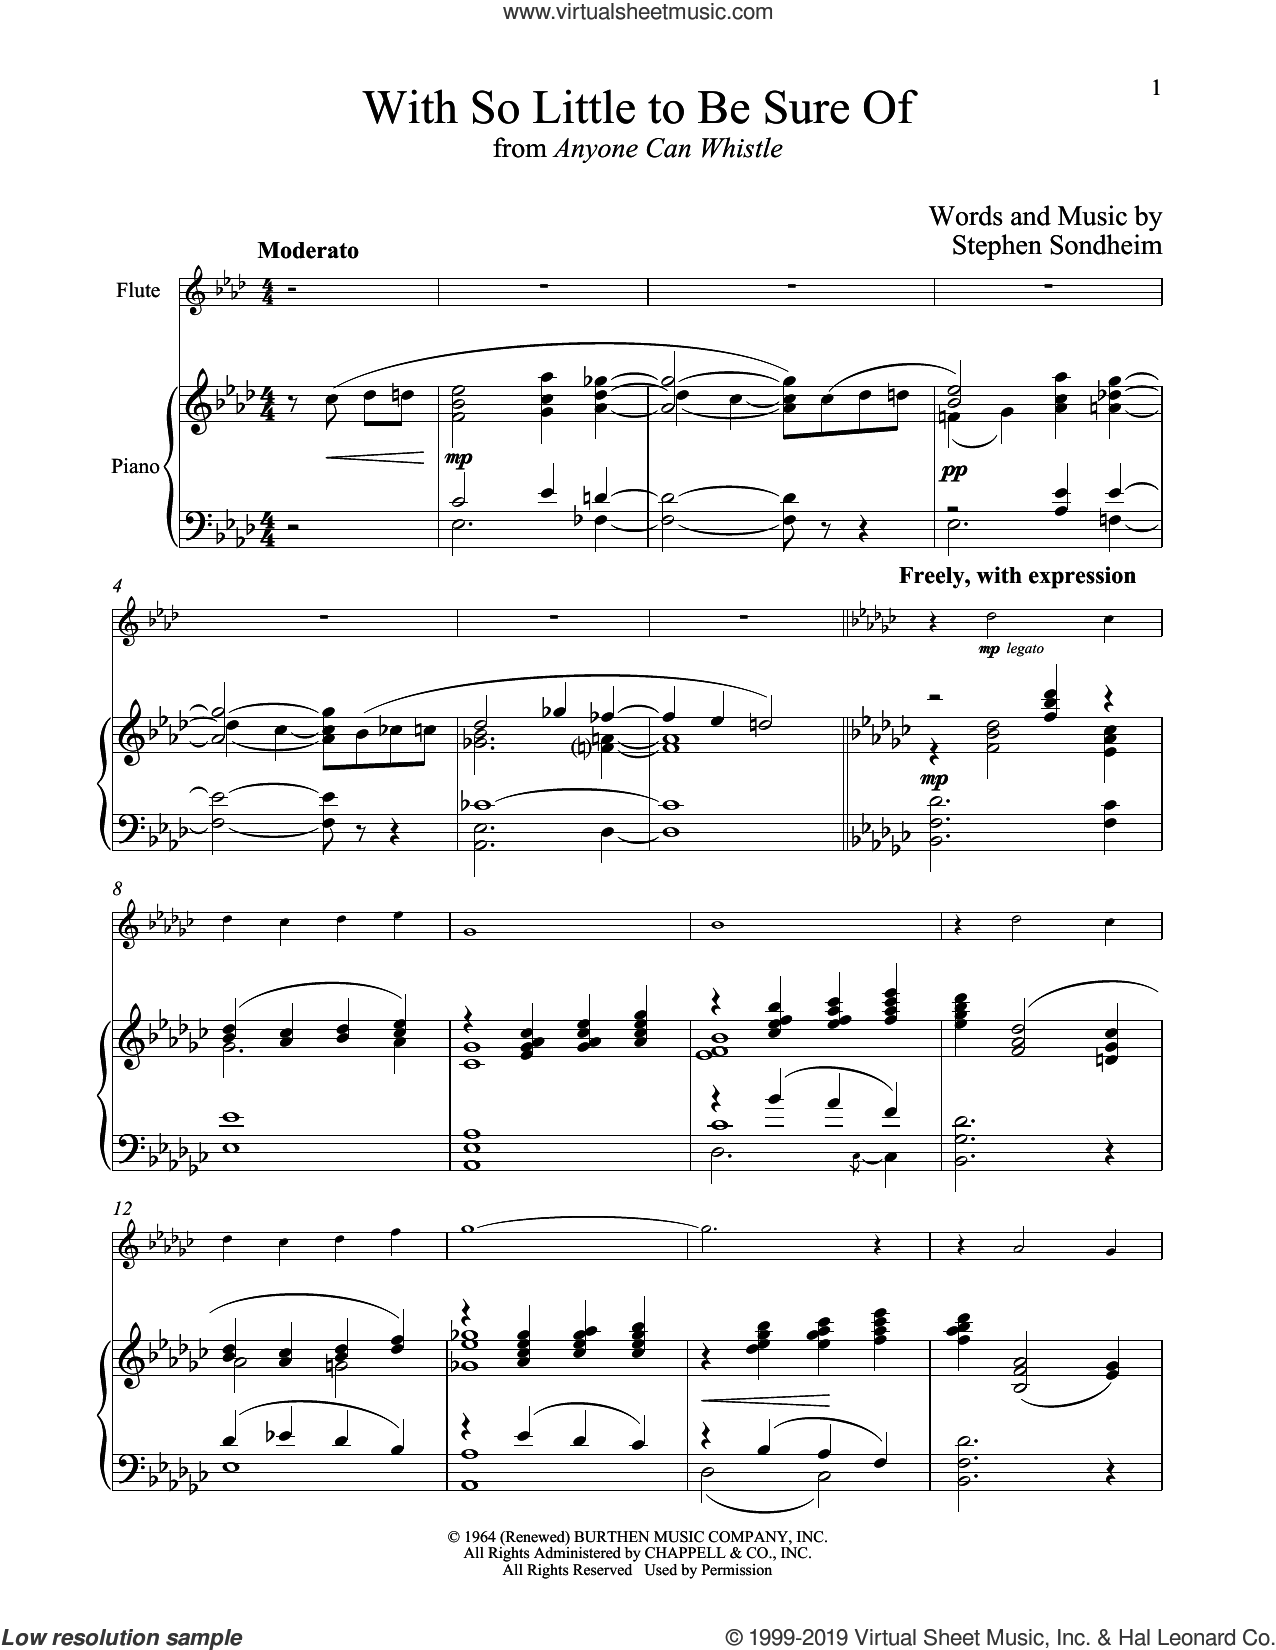 With So Little To Be Sure Of (from Anyone Can Whistle) sheet music for flute and piano by Stephen Sondheim, intermediate skill level